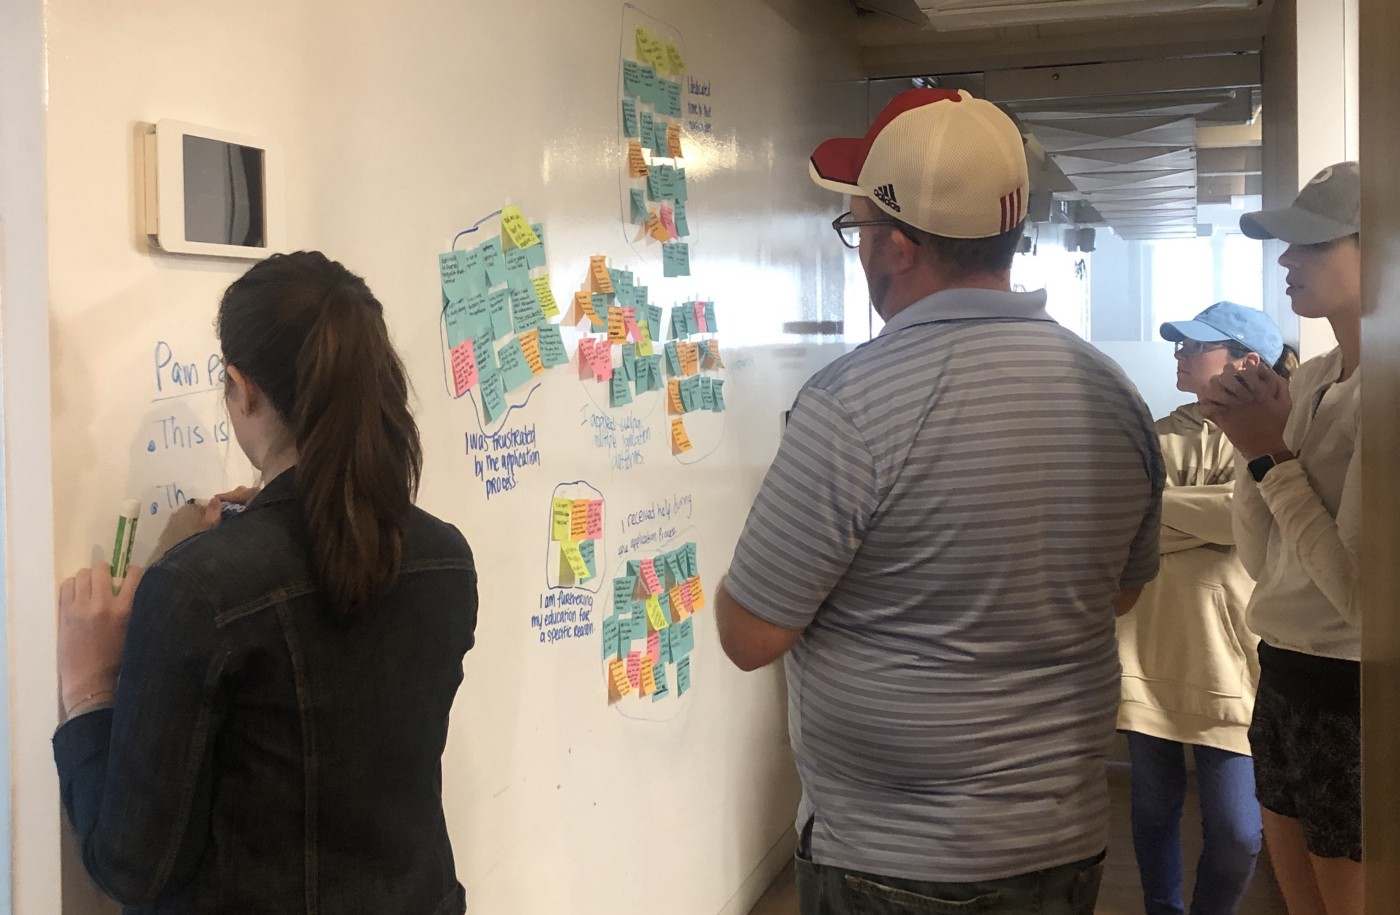 (From left to right) Megan Barbanel, Phil King, Katie Speidel, and myself (in the back) working on our affinity map